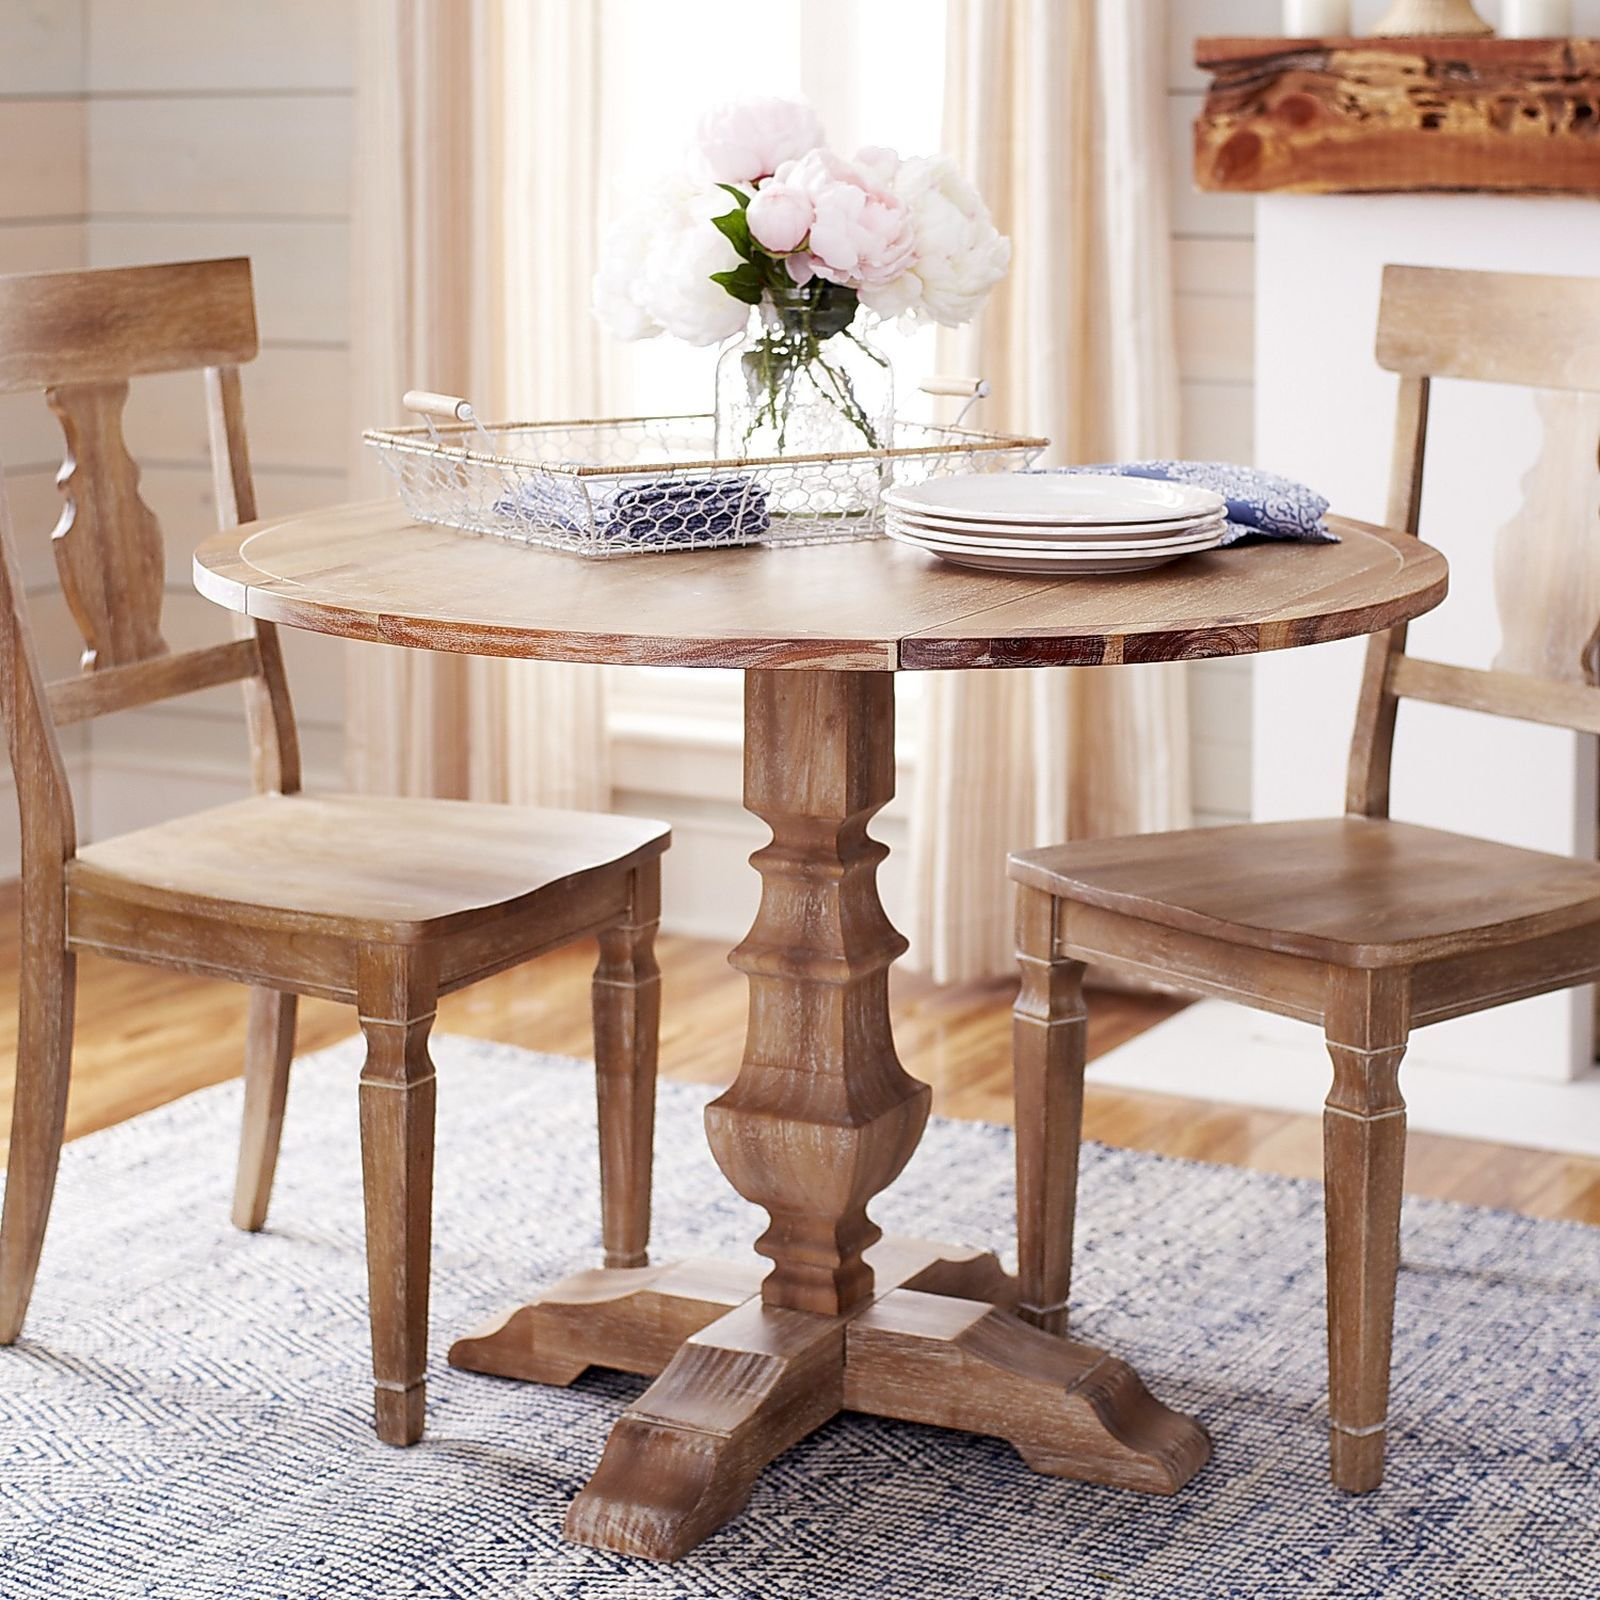 Bradding Natural Stonewash Round Drop Leaf Dining Table Throughout Most Up To Date Boothby Drop Leaf Rubberwood Solid Wood Pedestal Dining Tables (View 15 of 15)